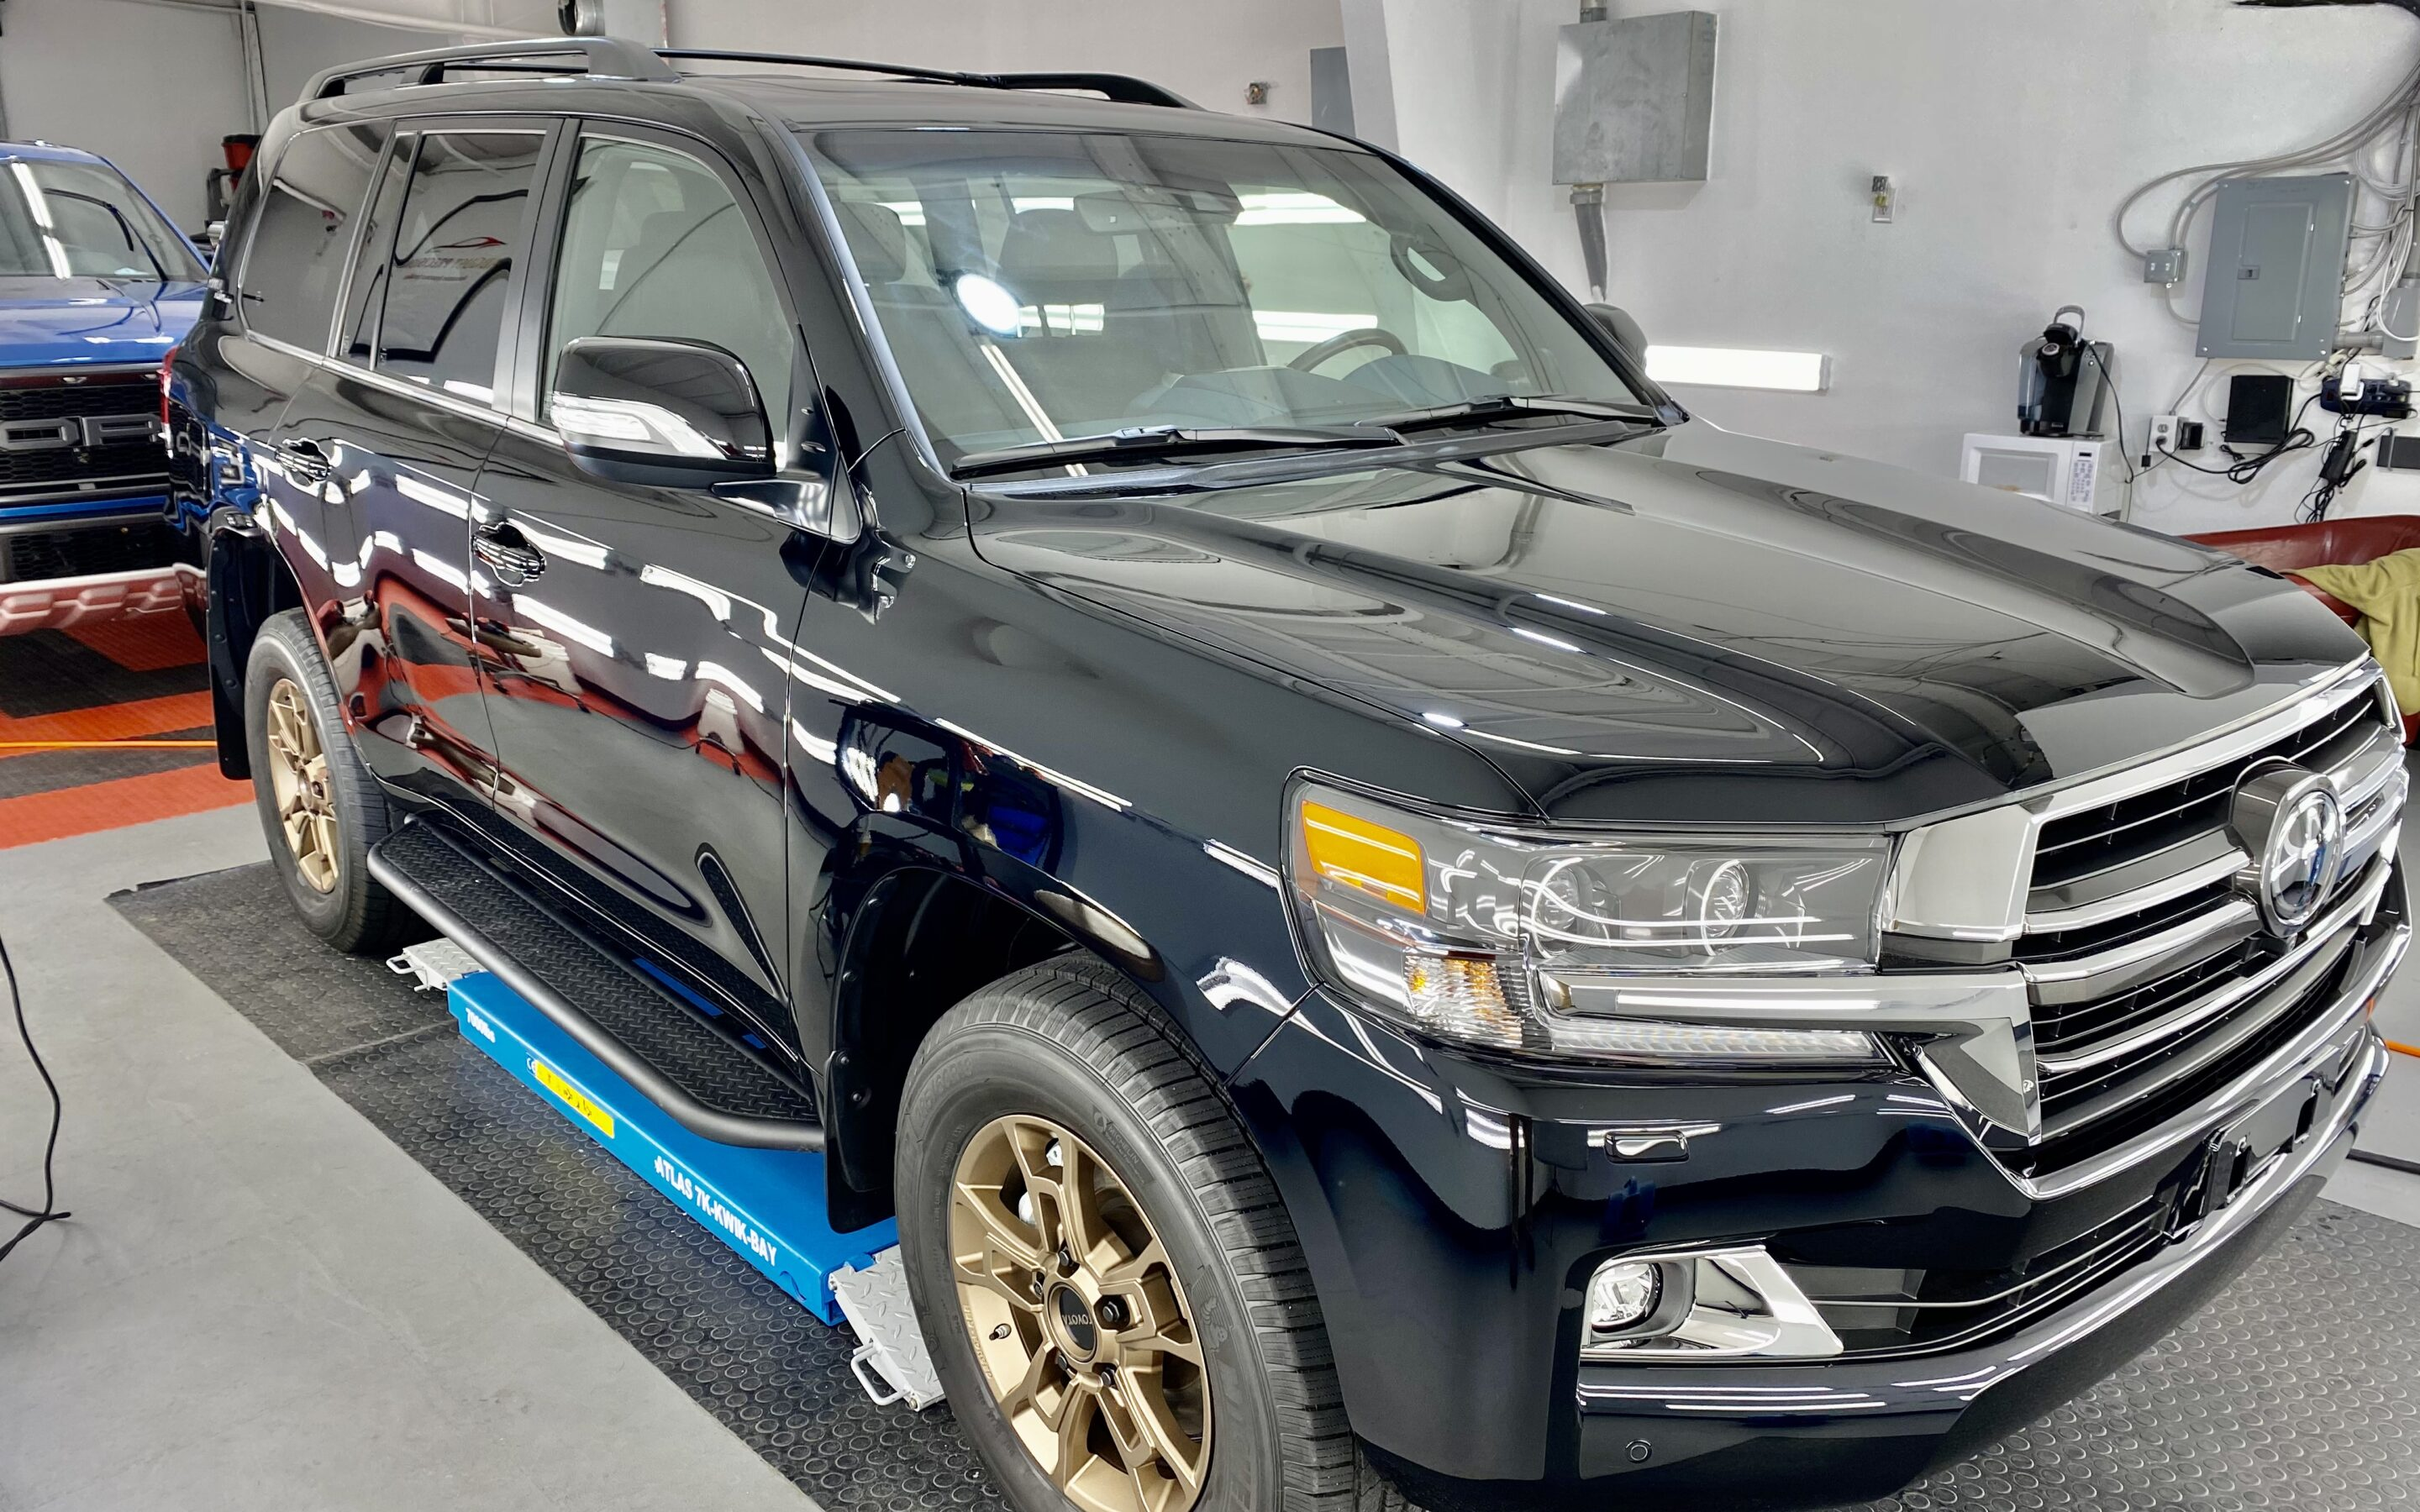 Photo of a New Car Preparation of a 2021 Toyota Land Cruiser